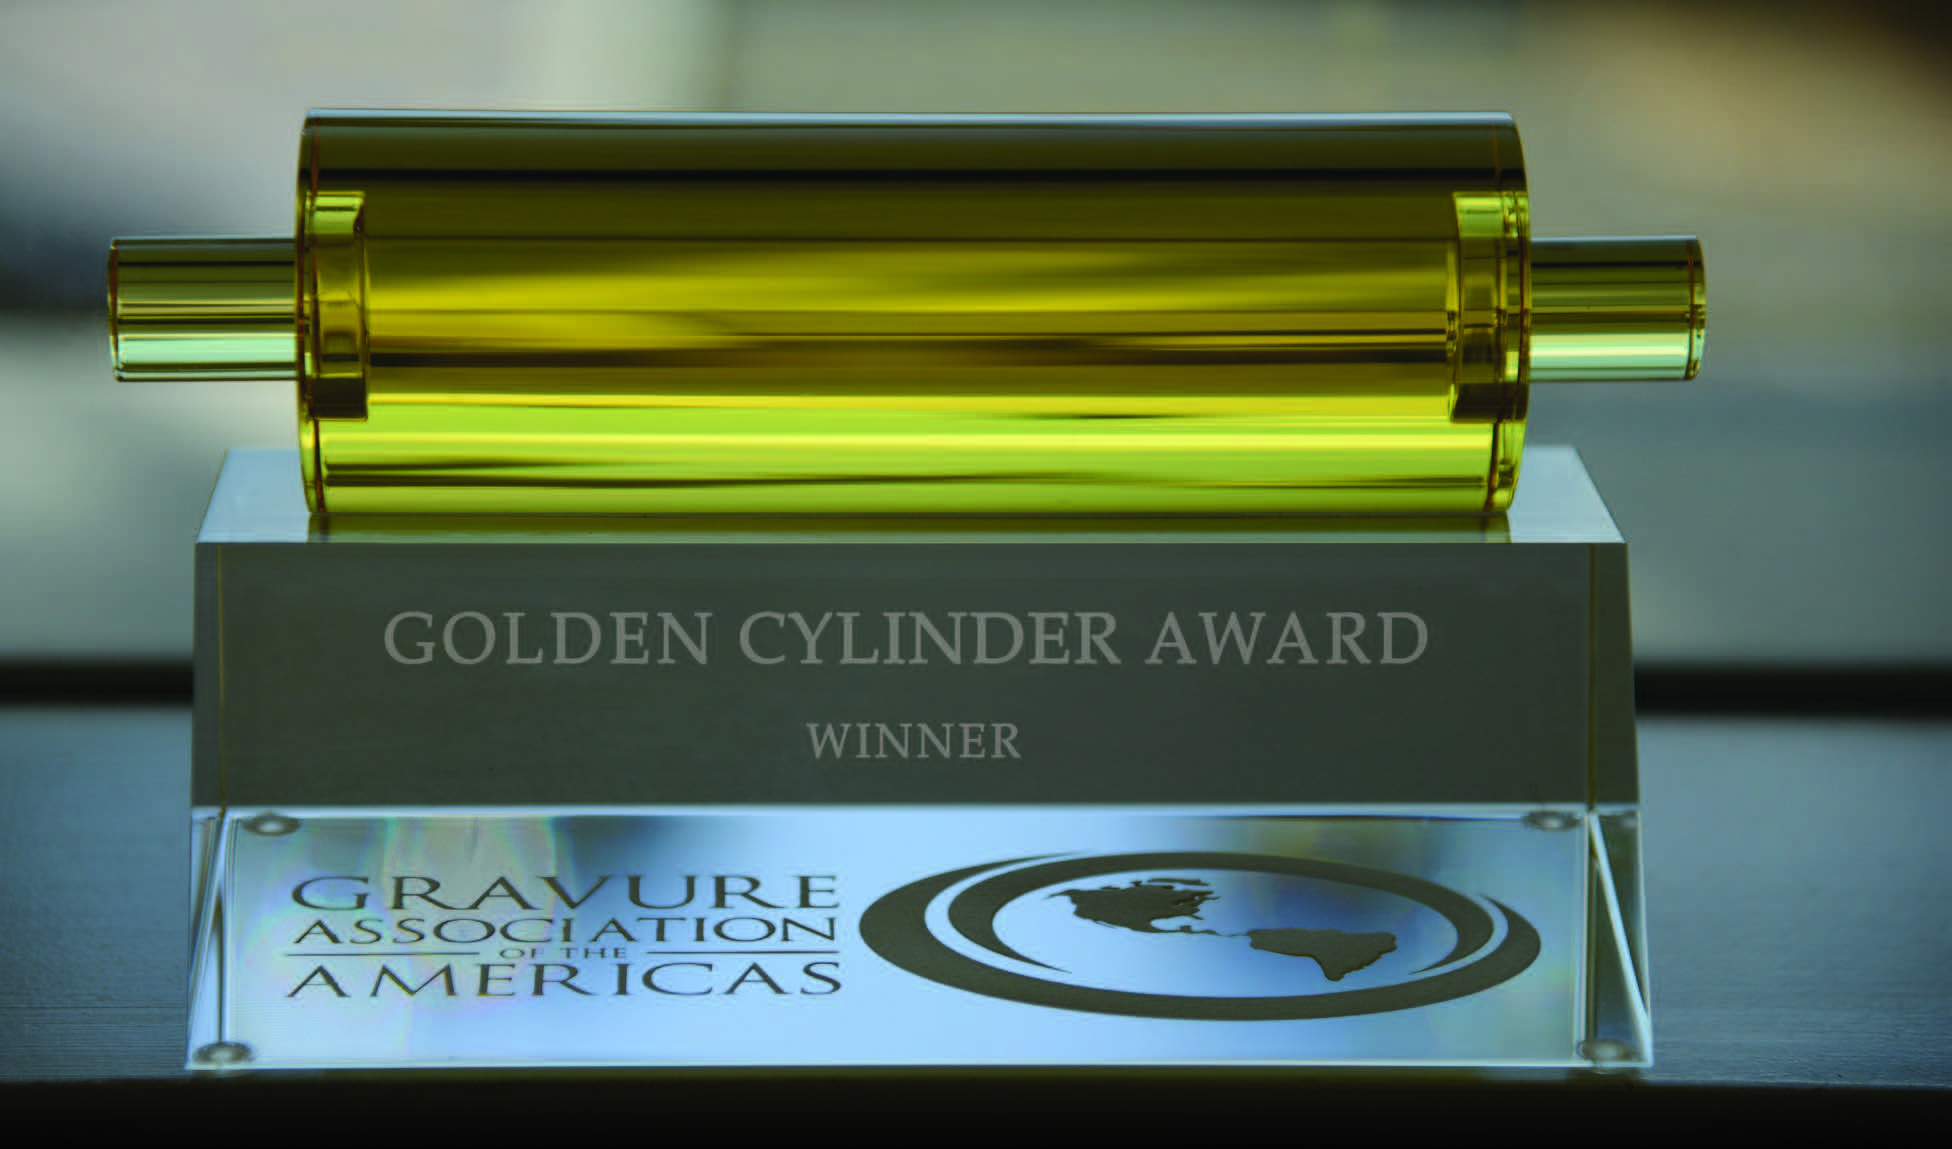 Golden Cylinder Awards Competition Now Open at Gravure Association of the Americas